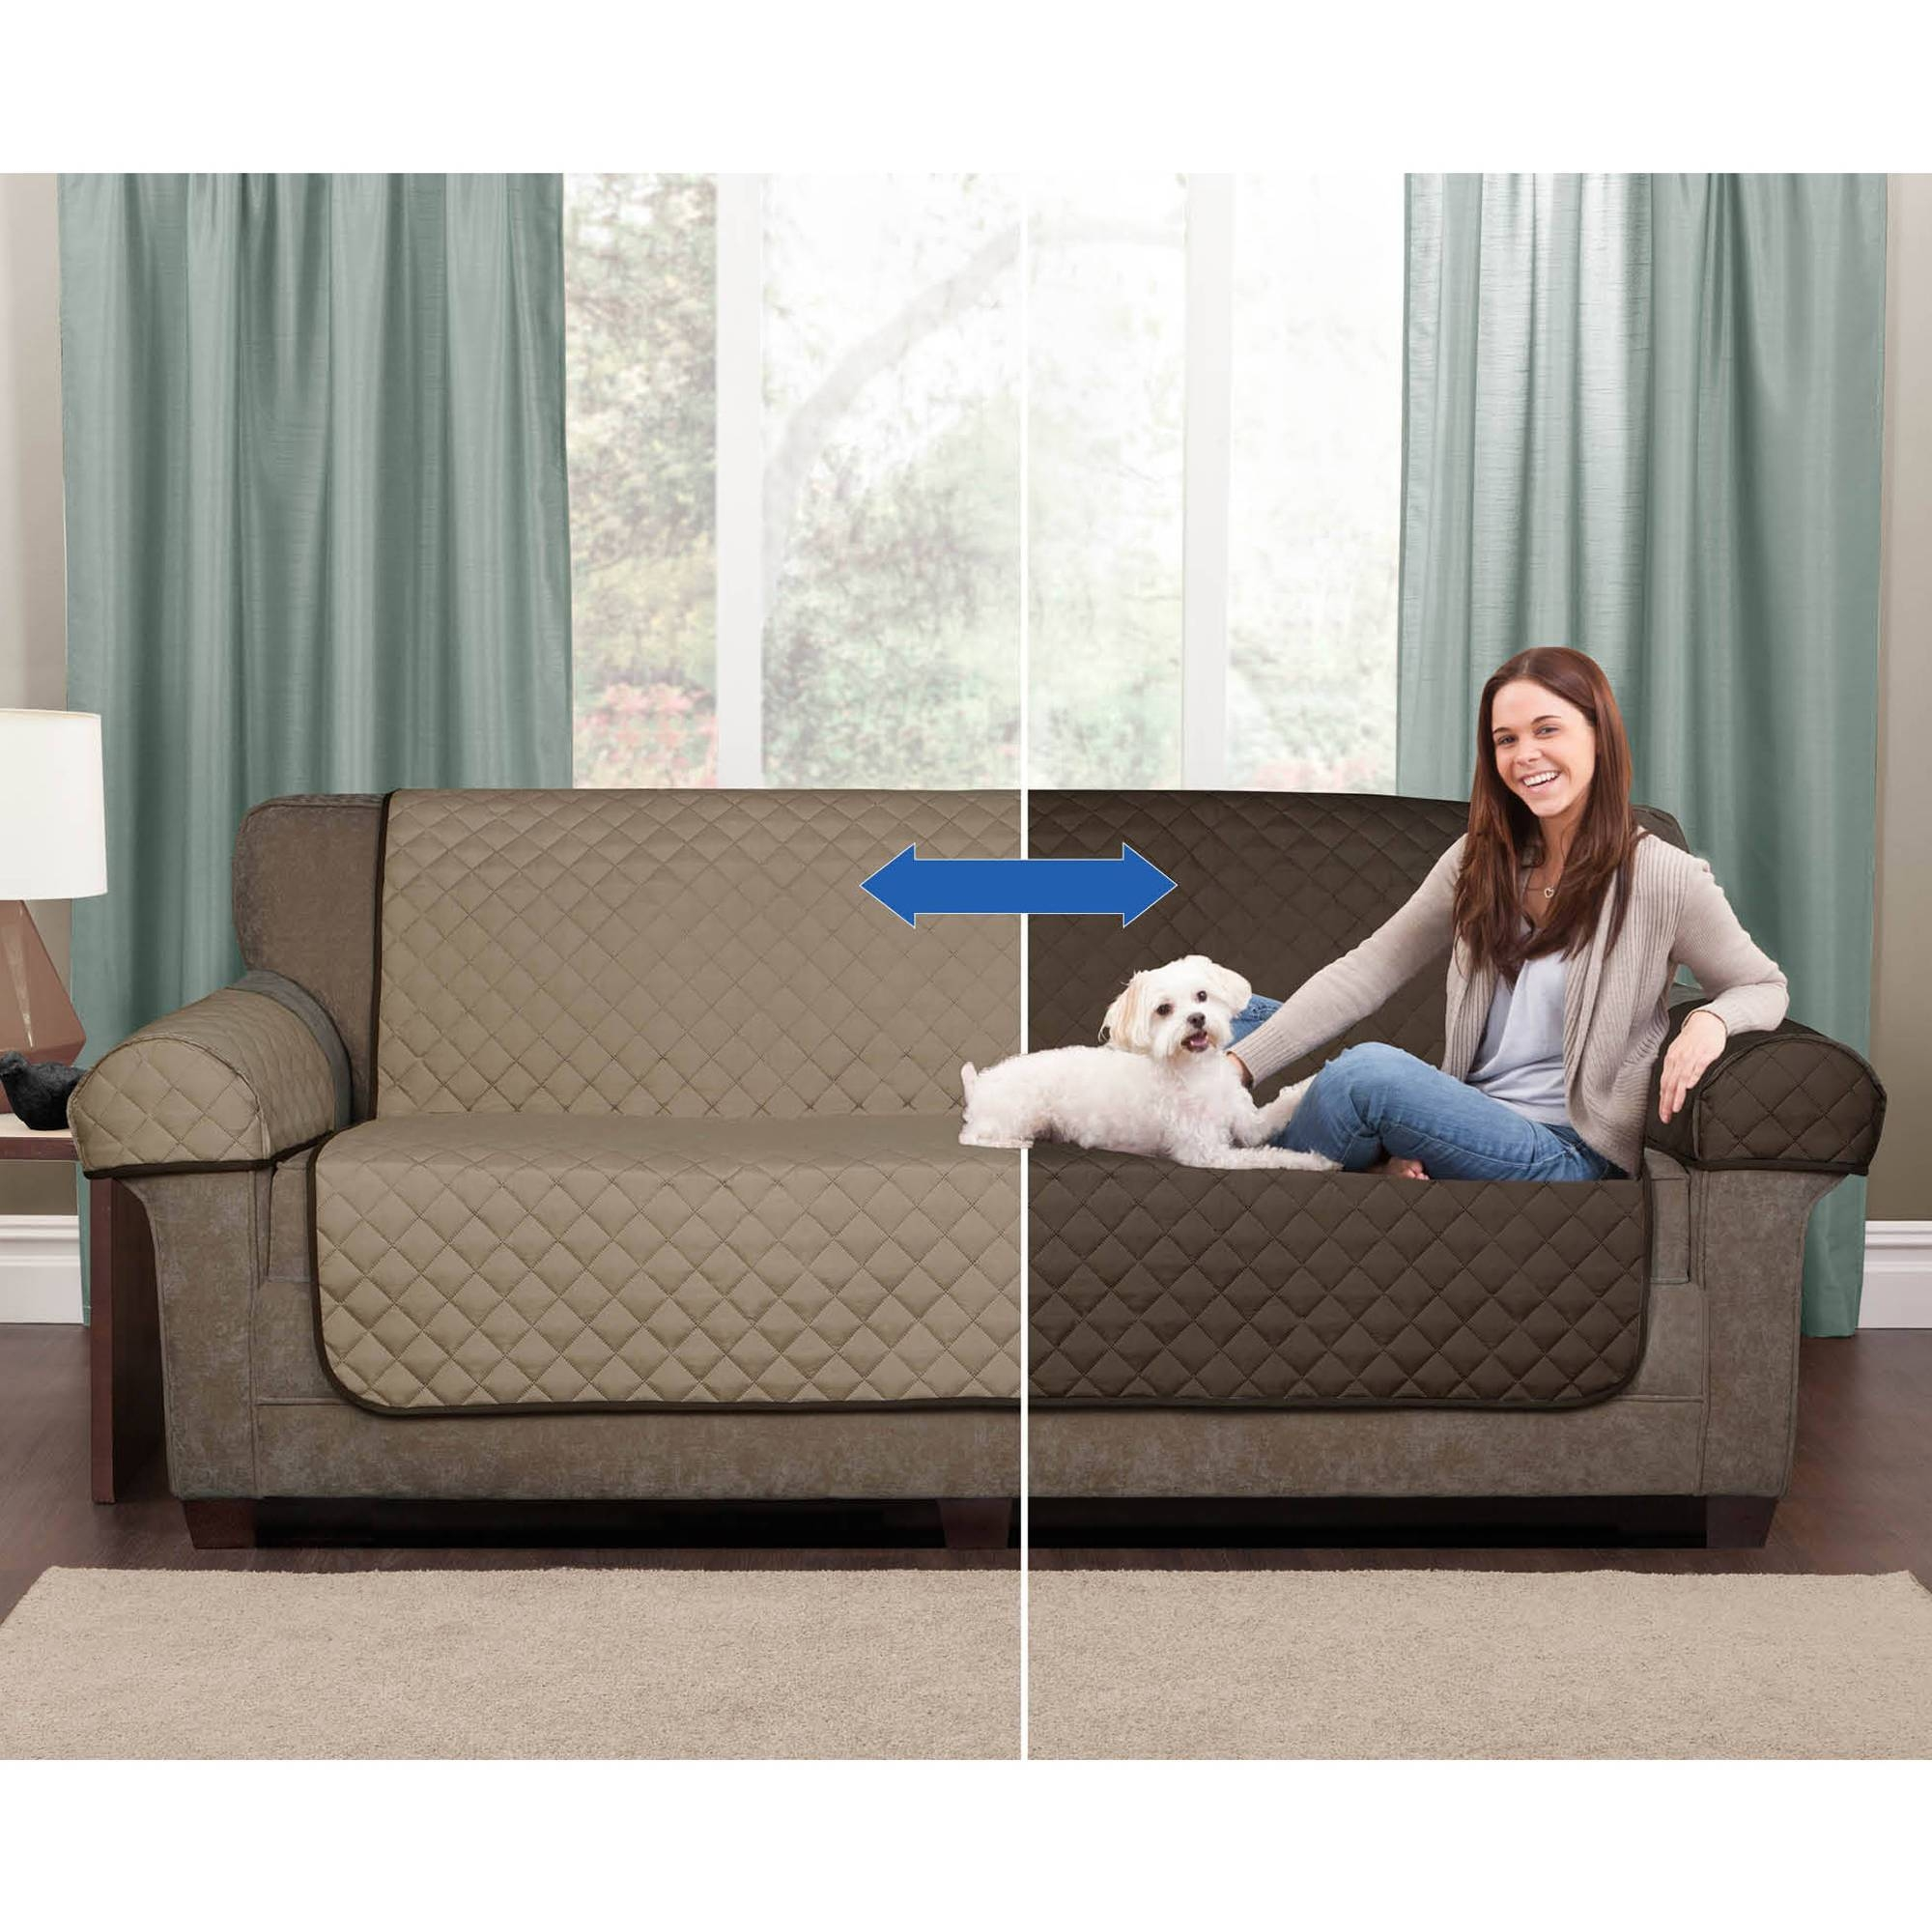 Pet Furniture Covers with Pet Proof Sofa Covers (Image 6 of 15)